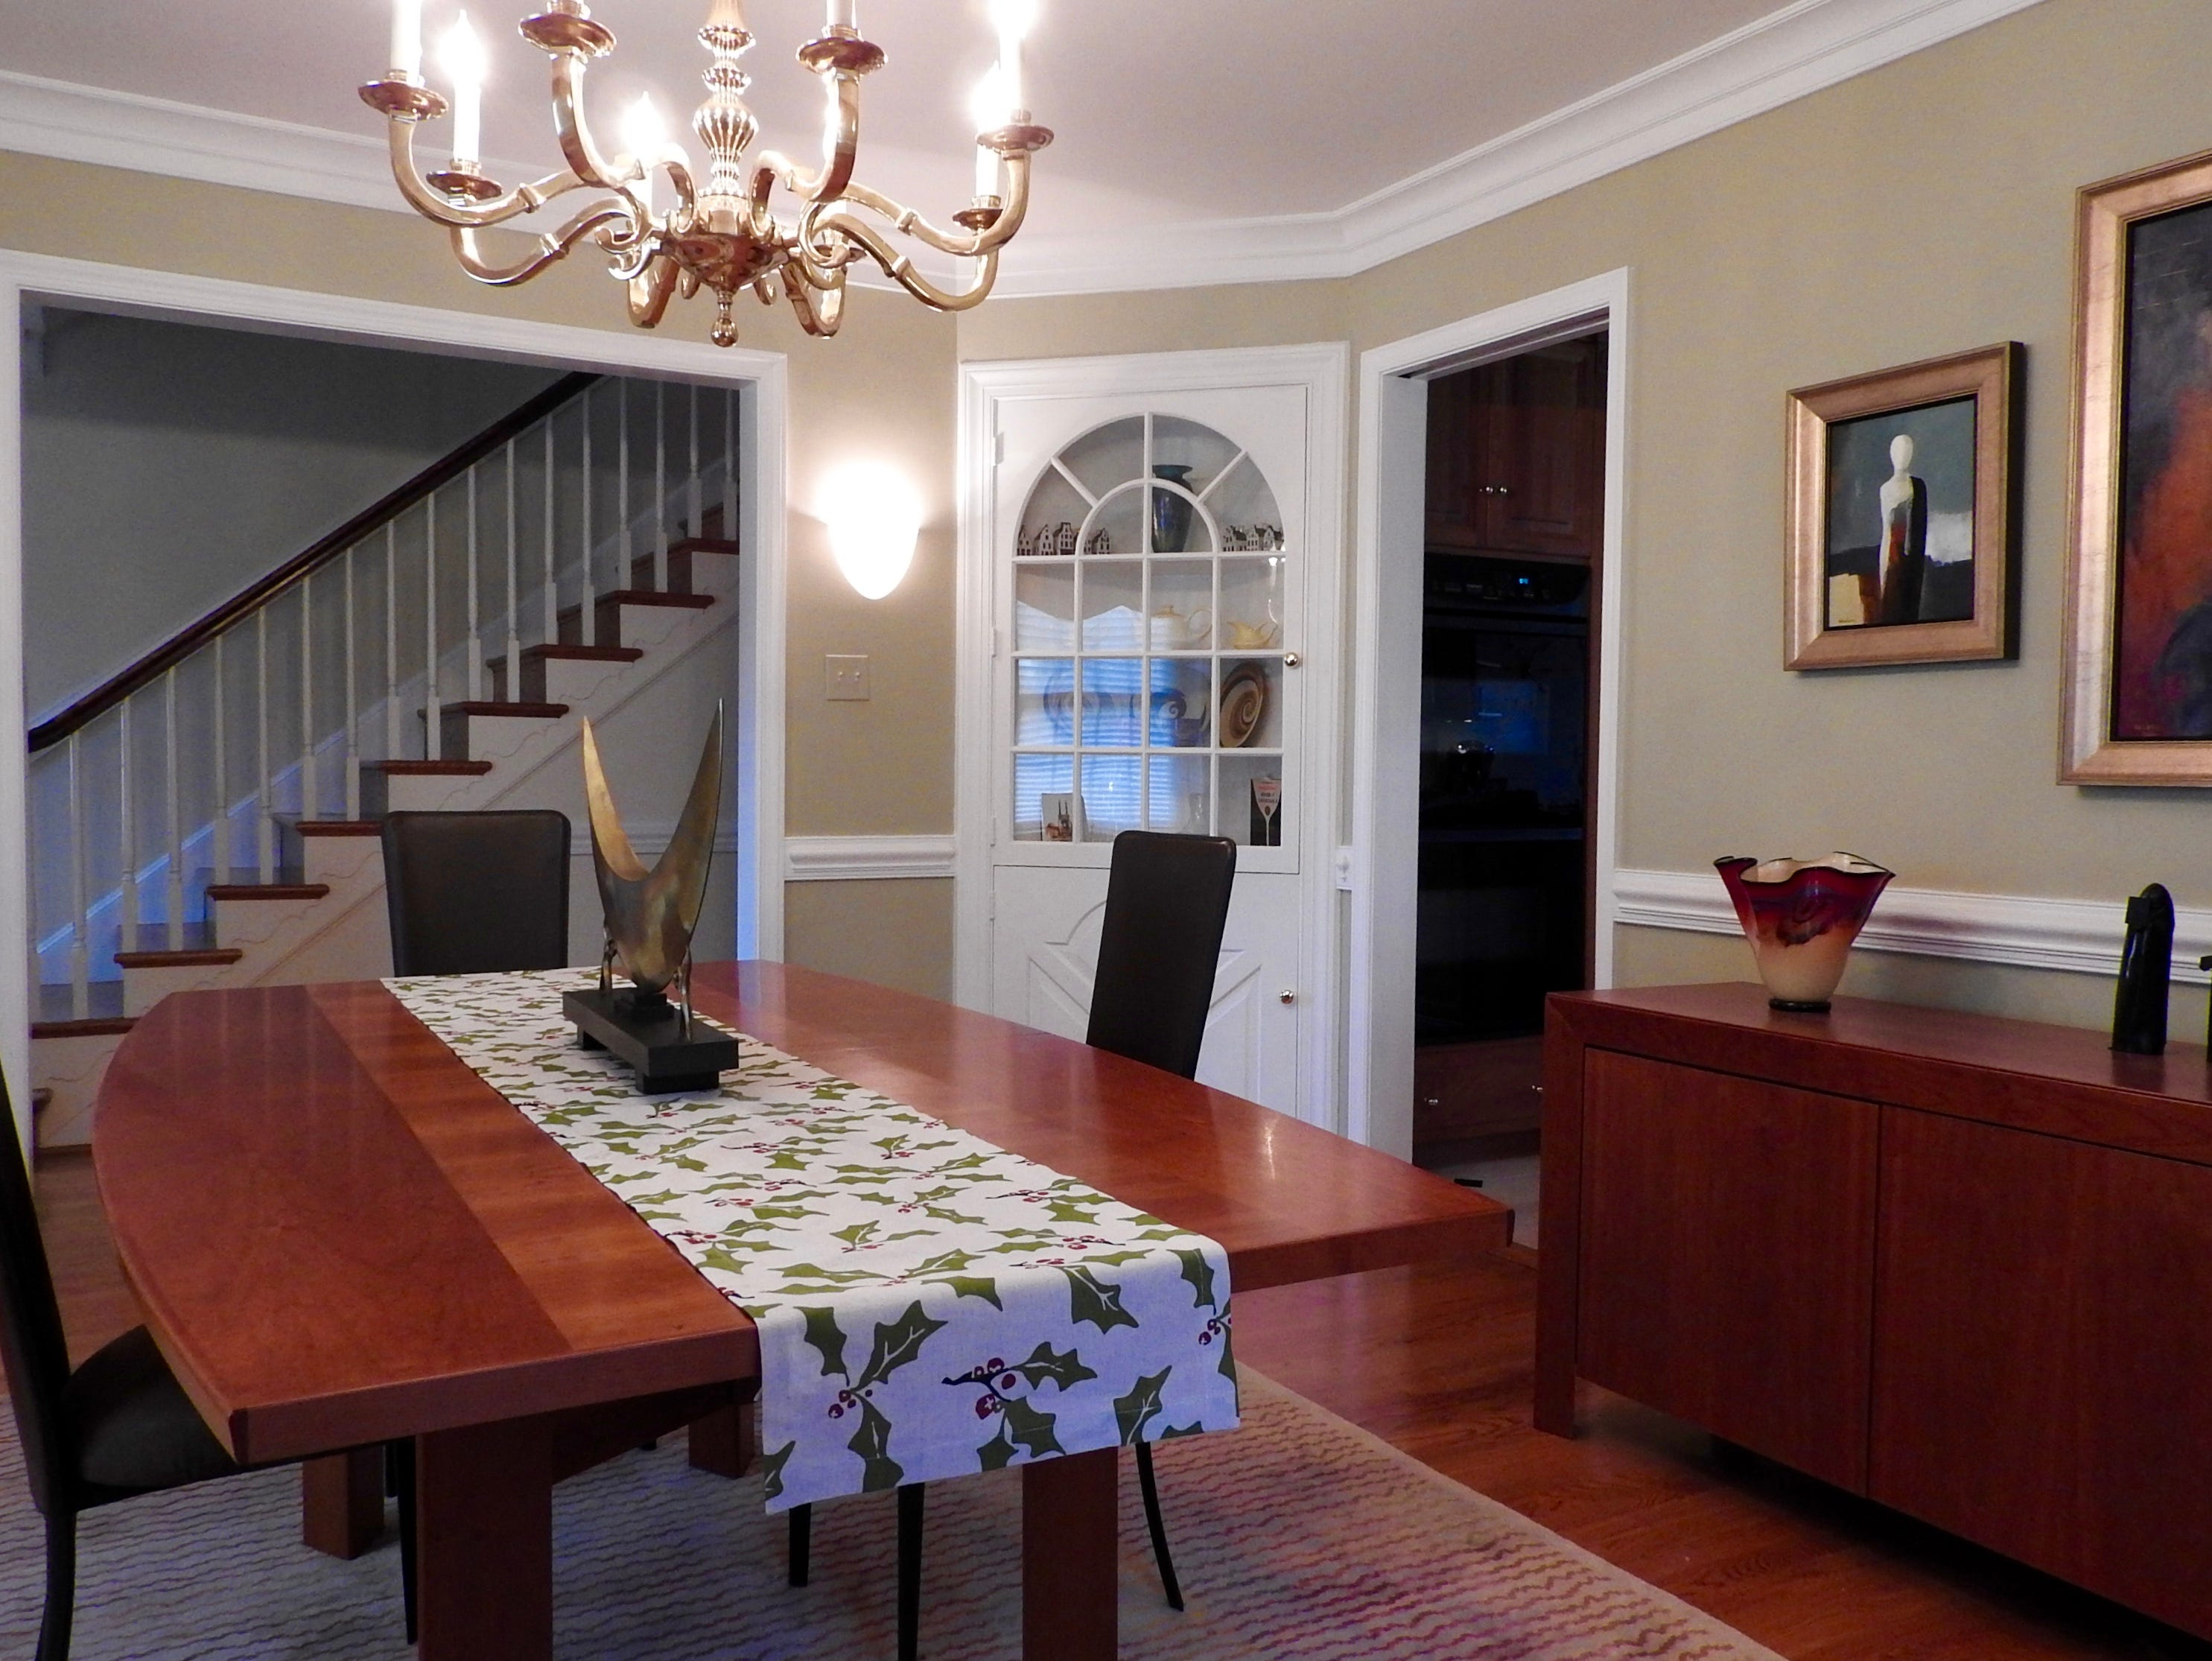 The formal dining room at 103 Edgewood Road in Alapocas features a chair rail and crown moldings.